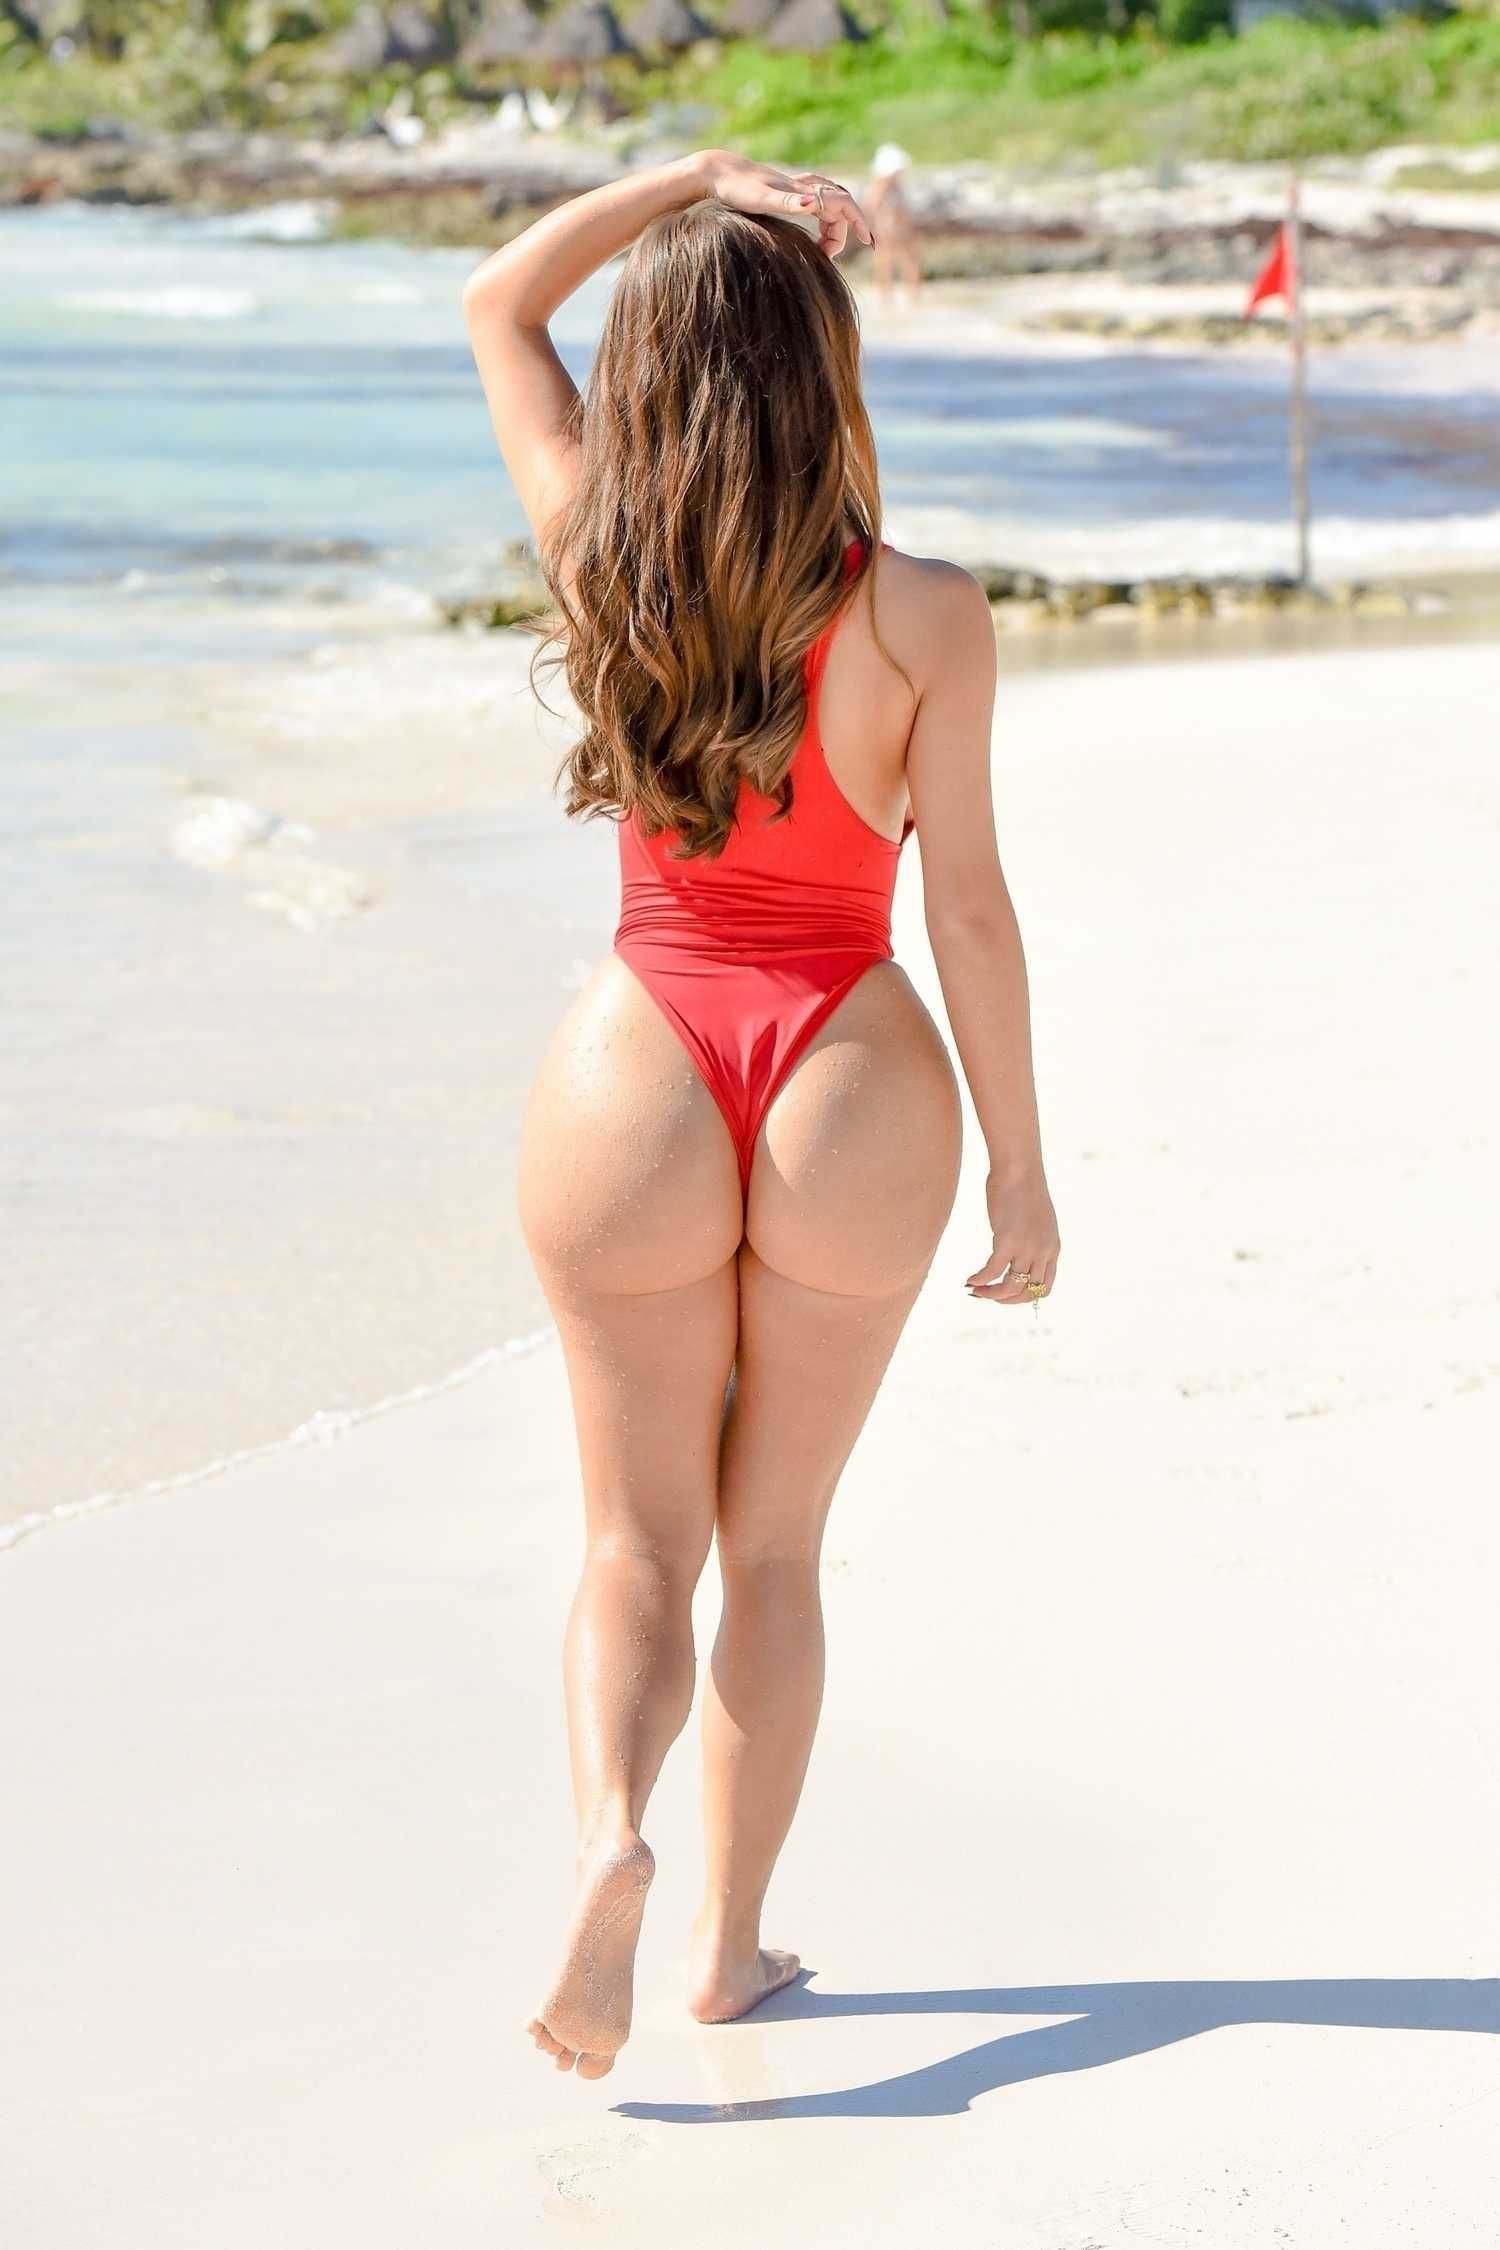 Kylie rose heads to the beach